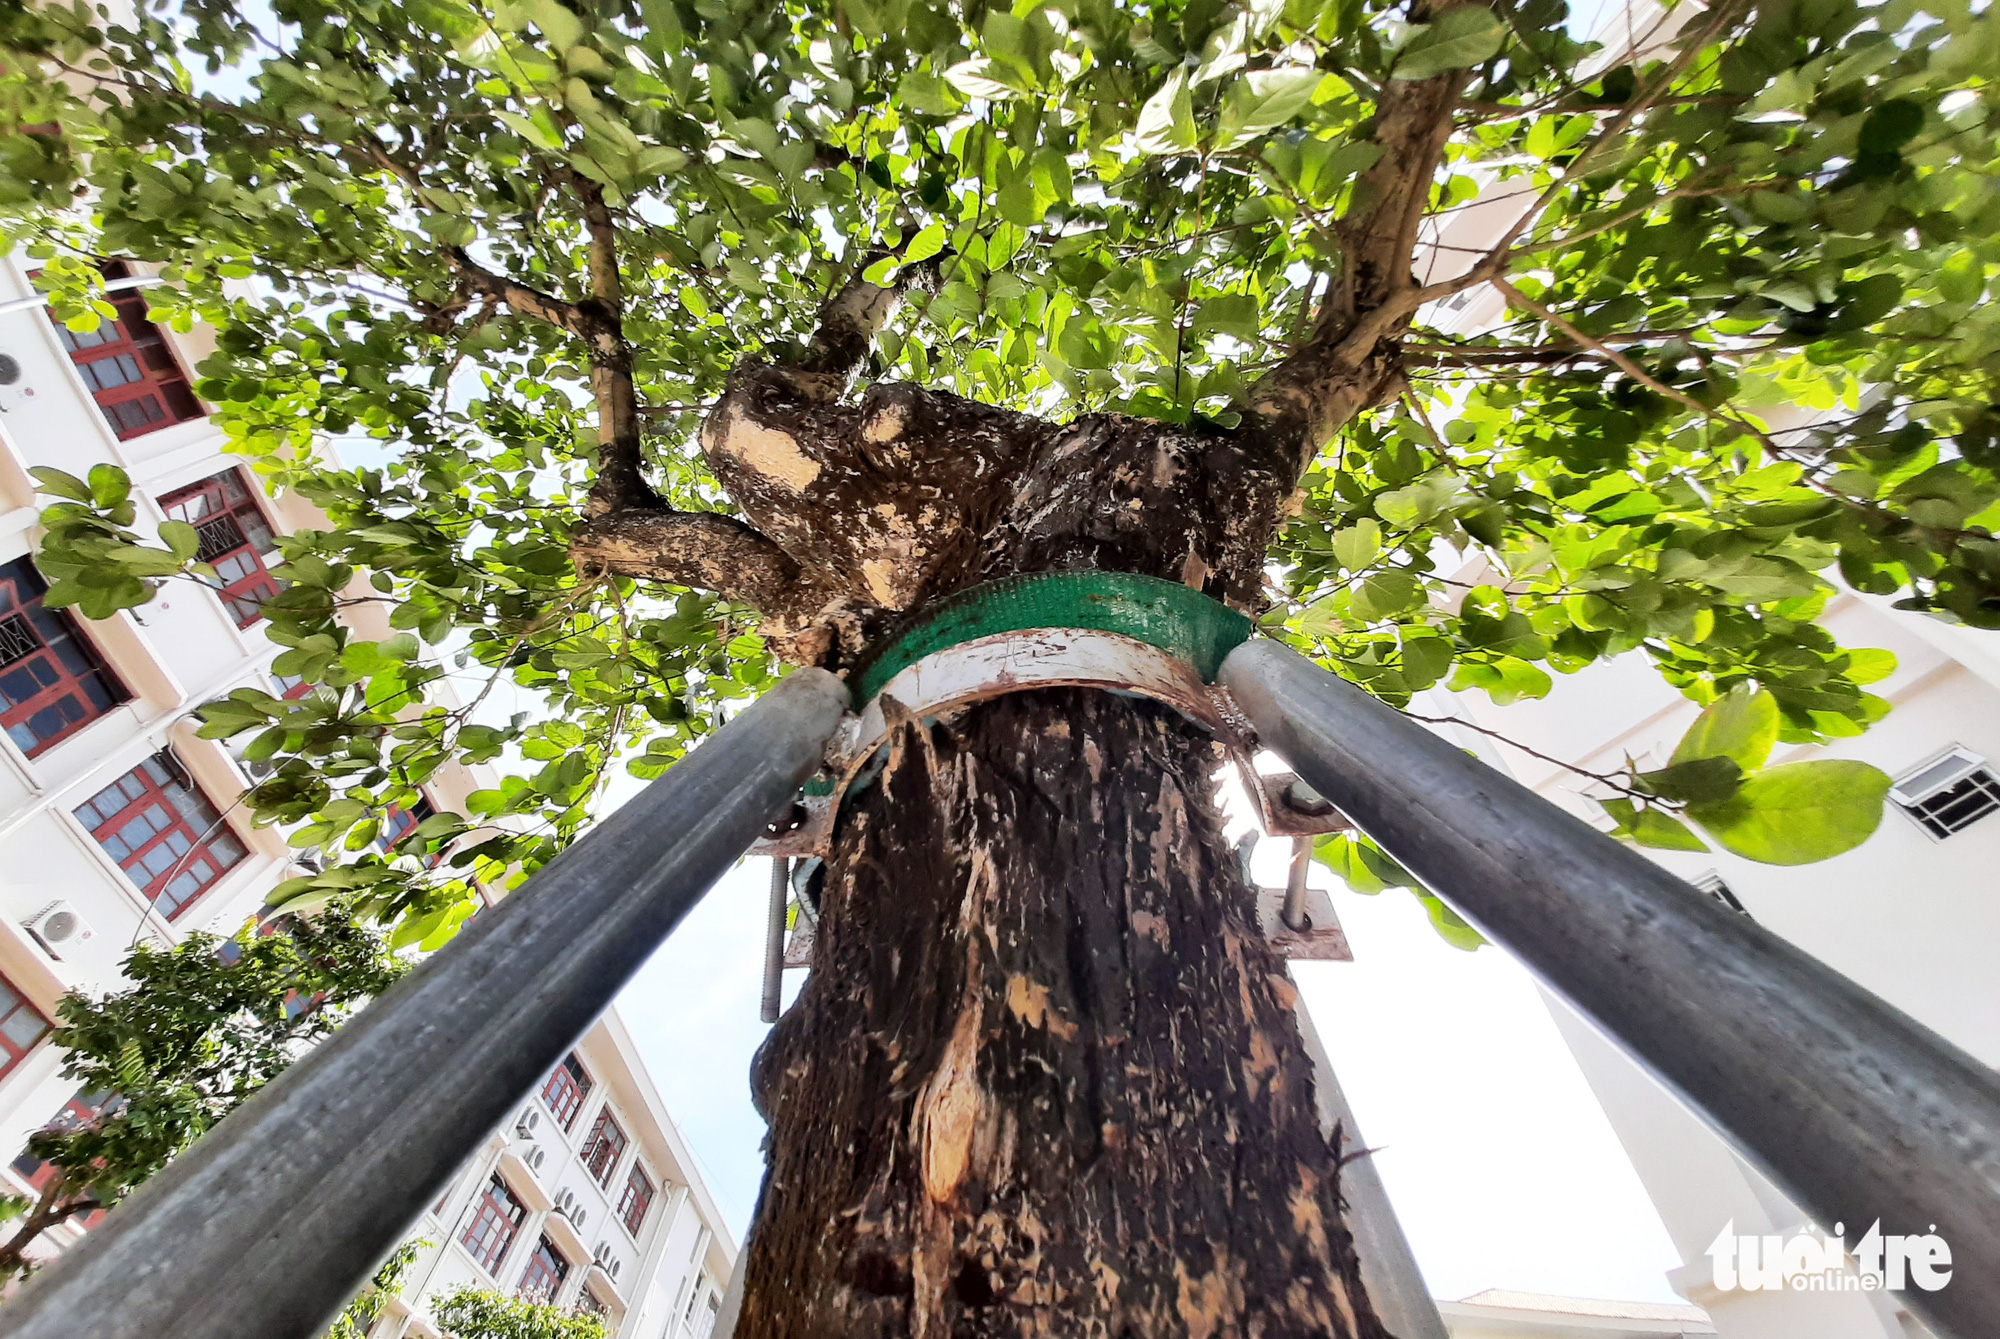 Vietnam schools give green trees 'armor' for safety in rainy season